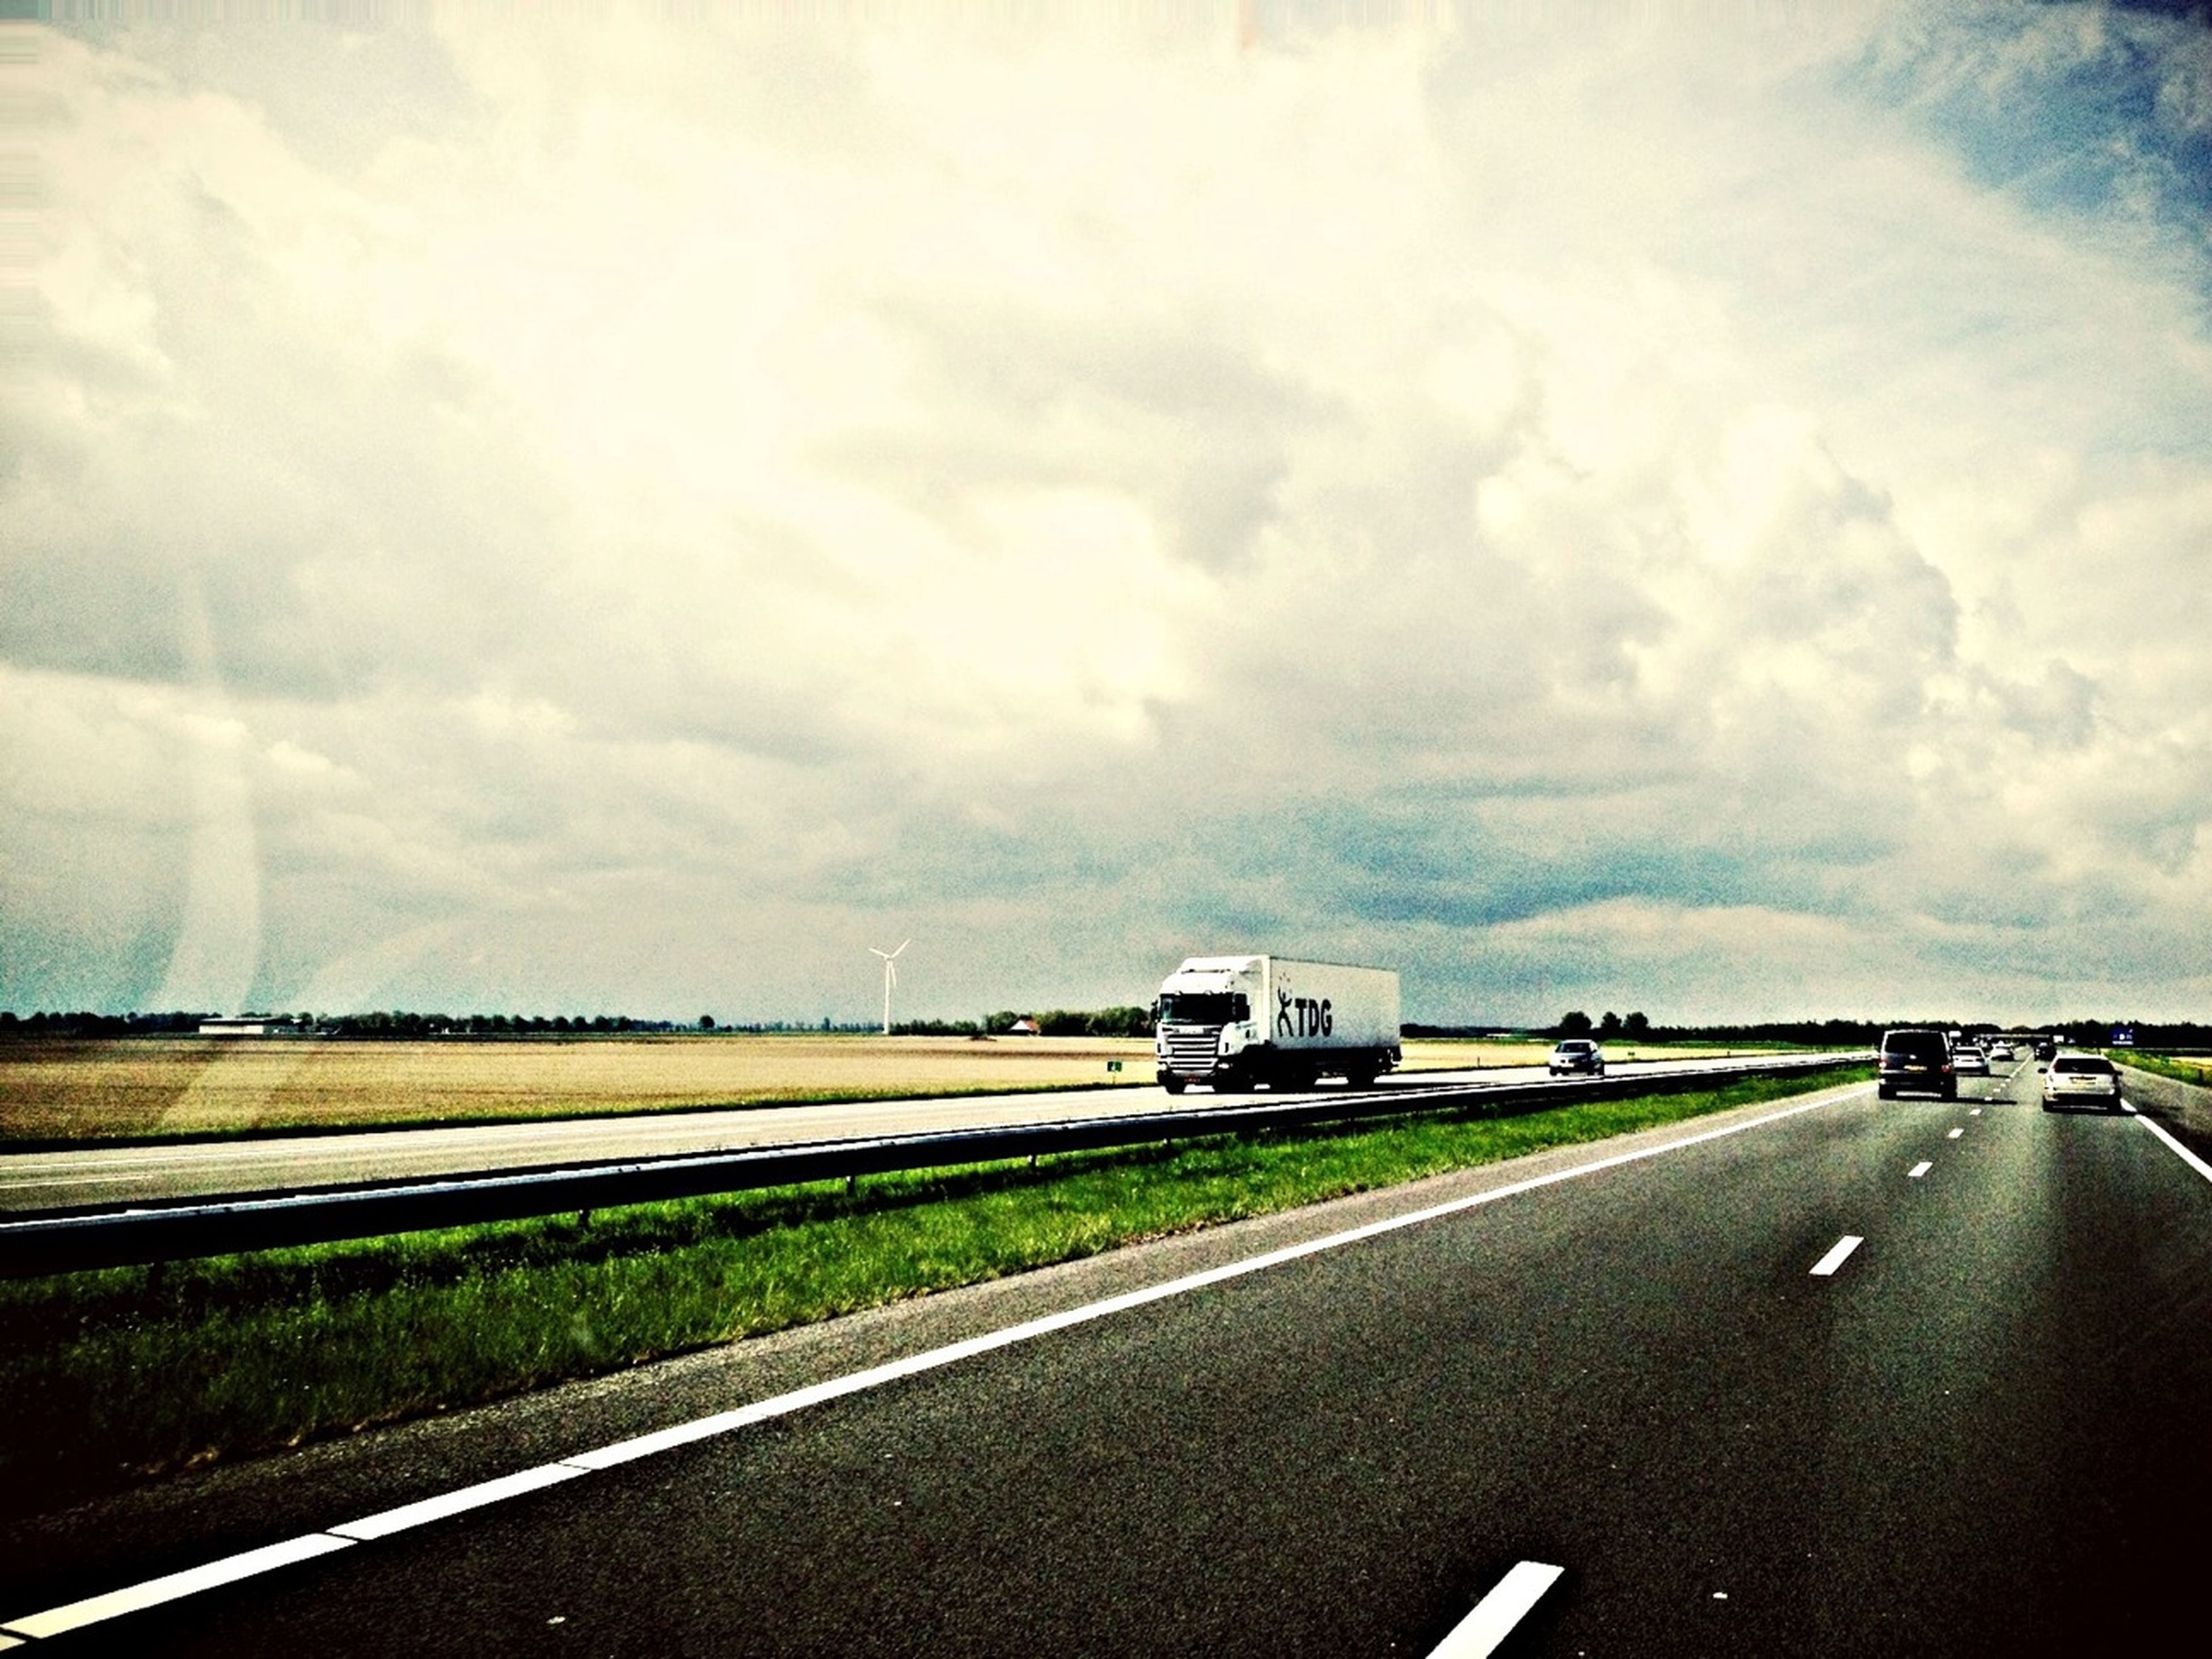 transportation, road, road marking, the way forward, sky, car, land vehicle, cloud - sky, mode of transport, street, diminishing perspective, country road, cloudy, vanishing point, highway, overcast, landscape, cloud, asphalt, empty road